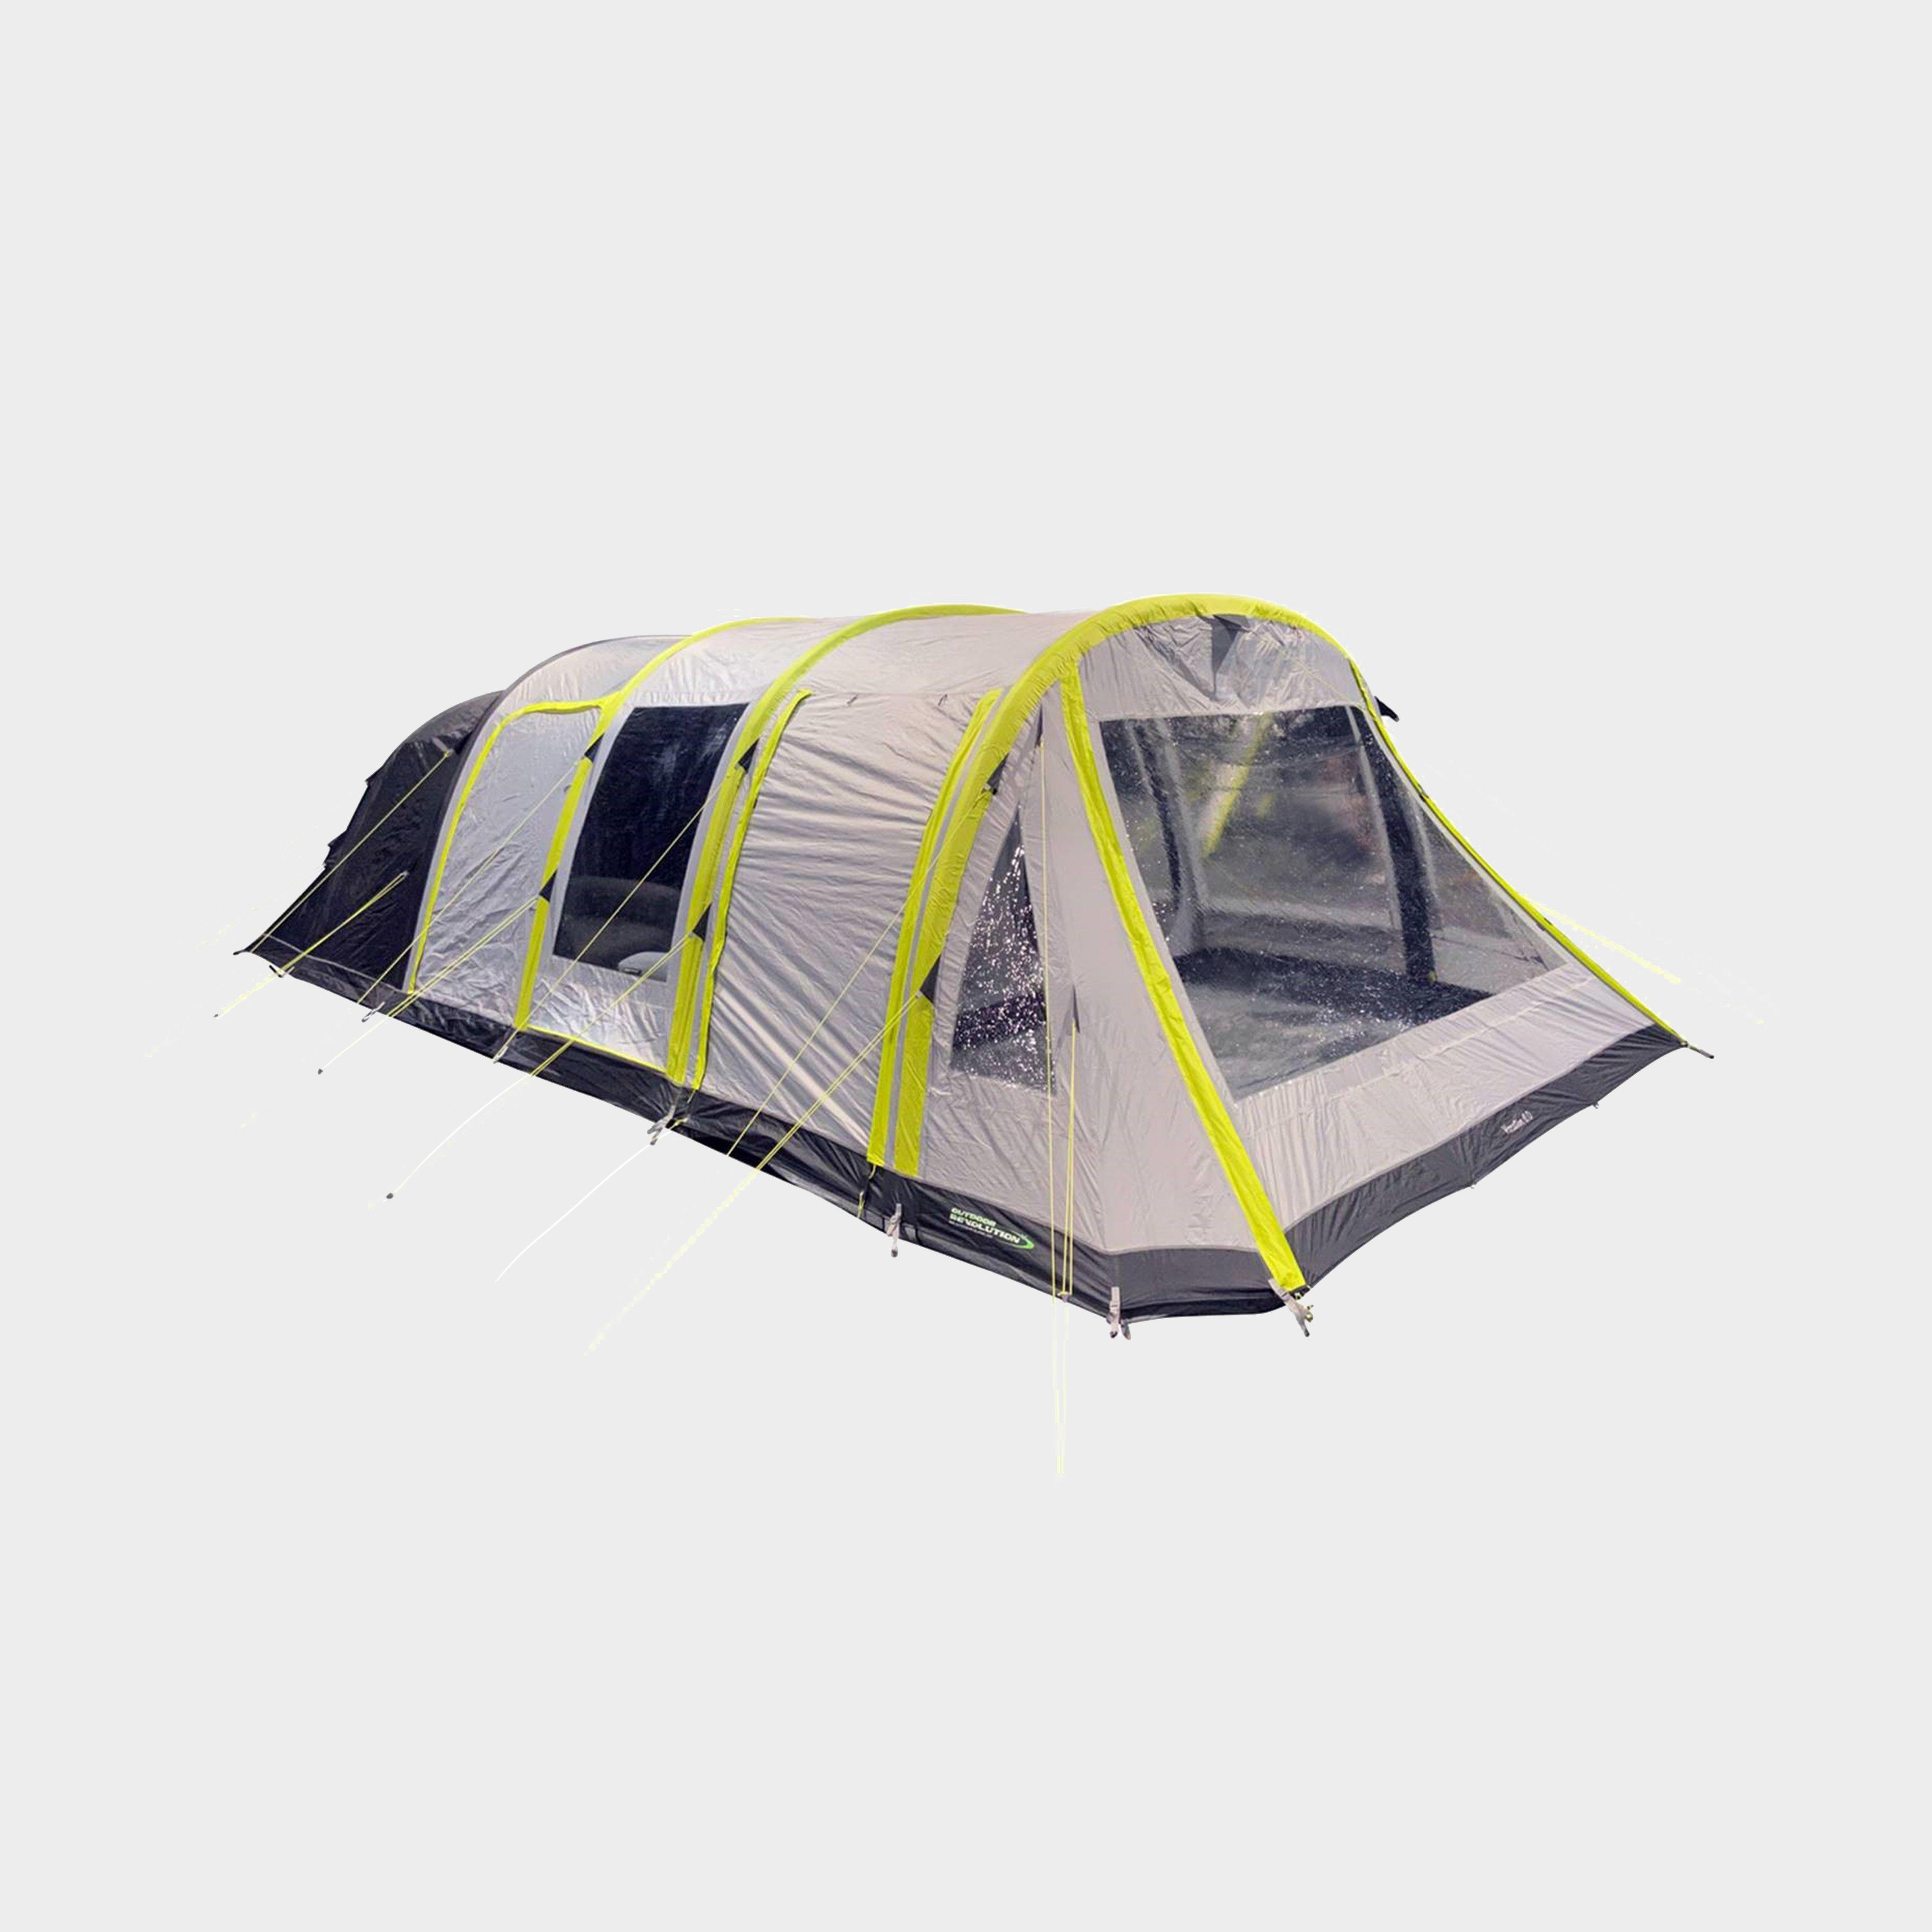 Outdoor Revolution Outdoor Revolution Vacation 6.0 Inflatable Tent, Grey